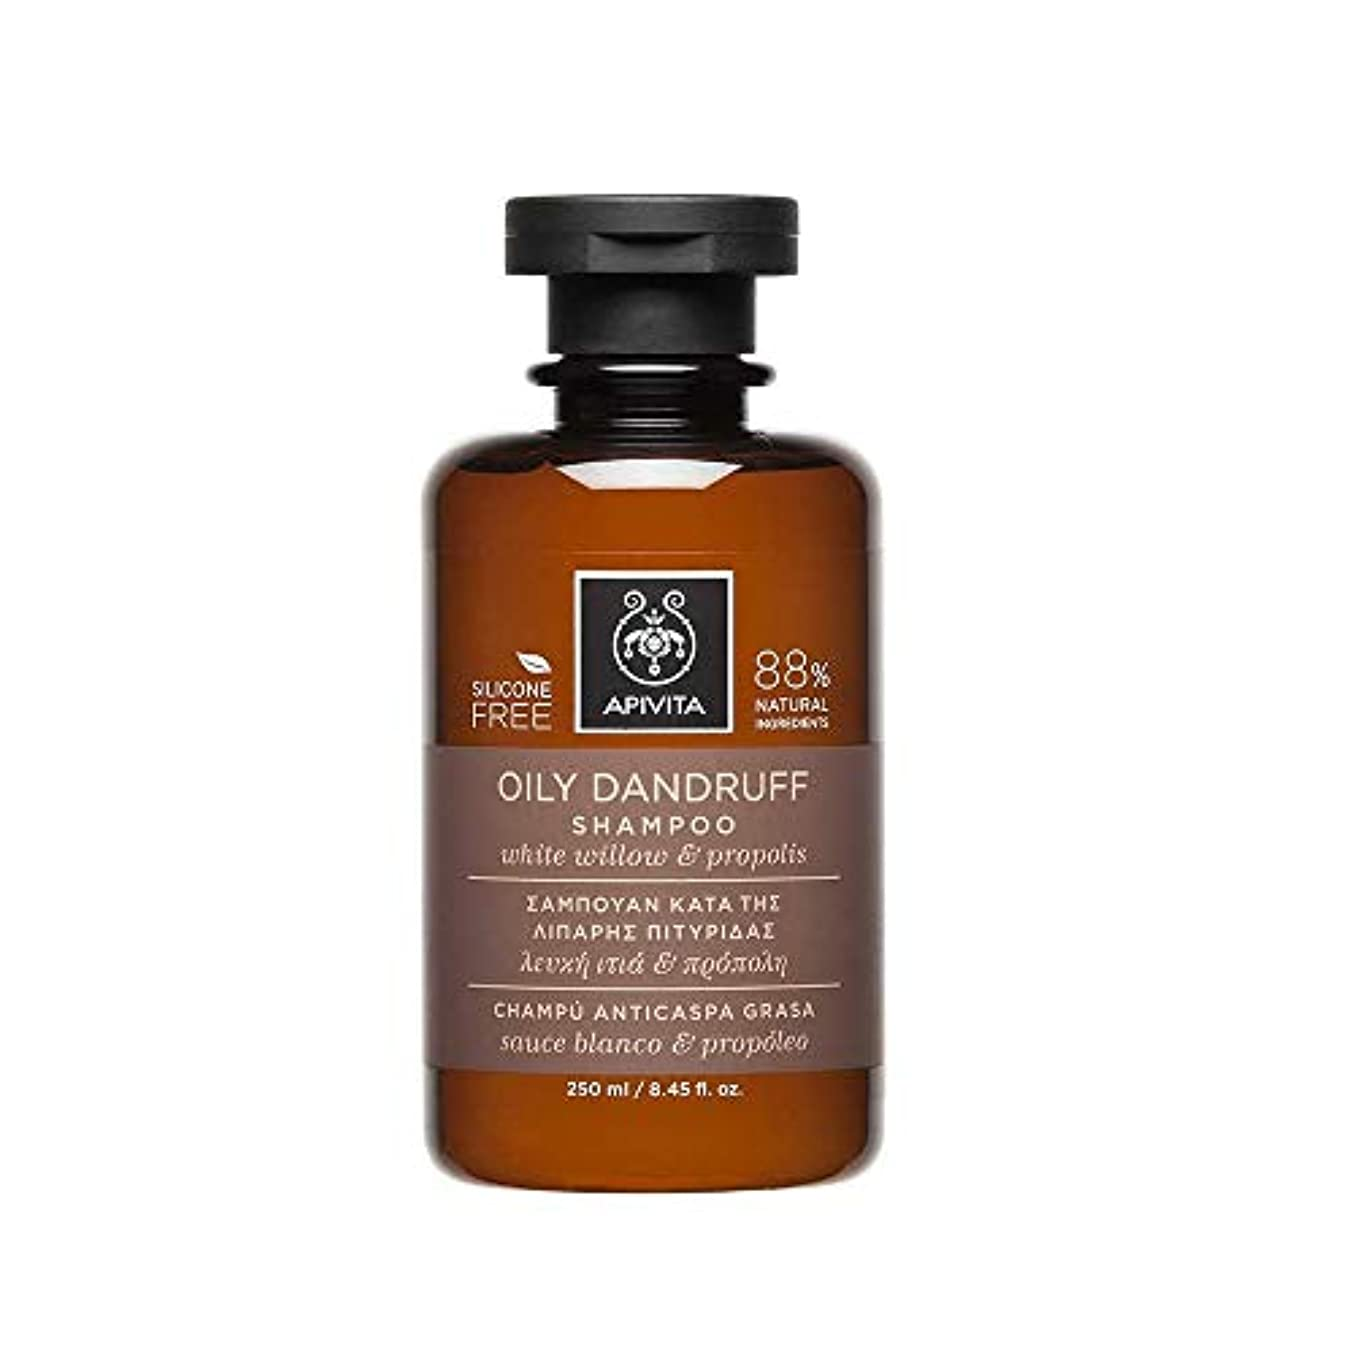 相談する笑タワーアピヴィータ Oily Dandruff Shampoo with White Willow & Propolis (For Oily Scalp) 250ml [並行輸入品]